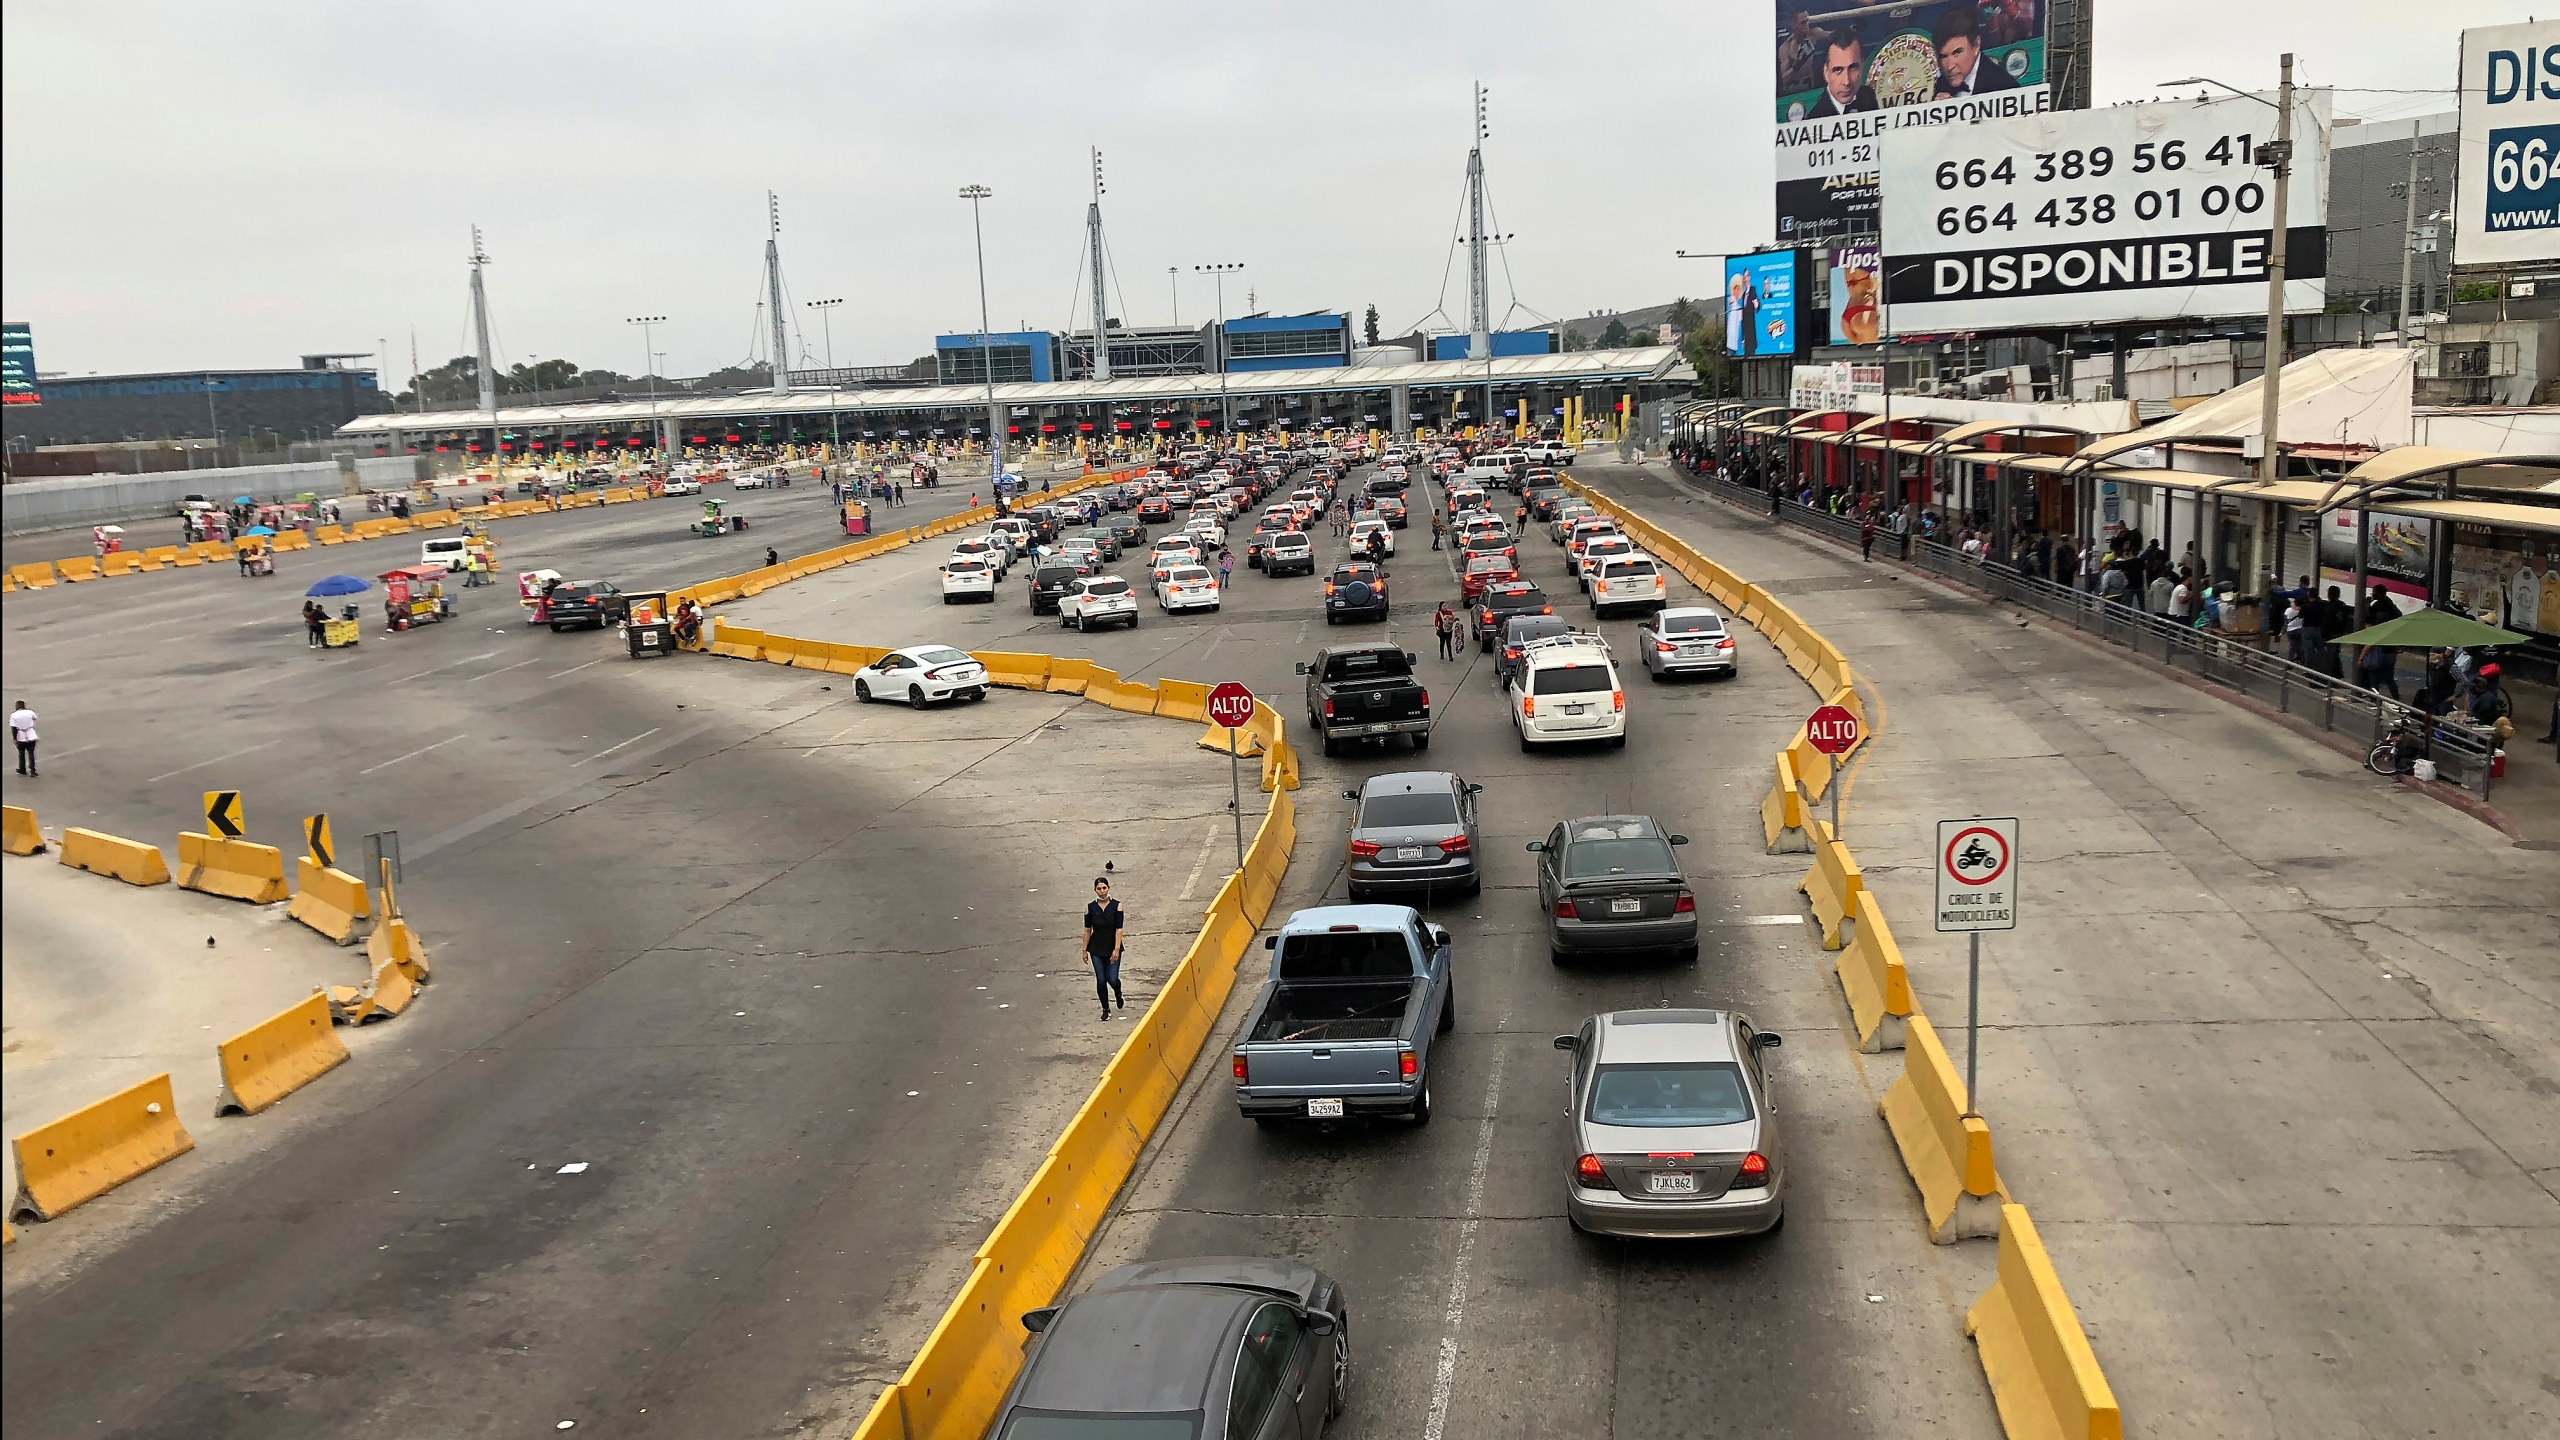 Cars wait in line to enter the U.S. at San Diego's San Ysidro border crossing on Aug. 25, 2020, in Tijuana, Mexico. (Elliot Spagat / Associated Press)